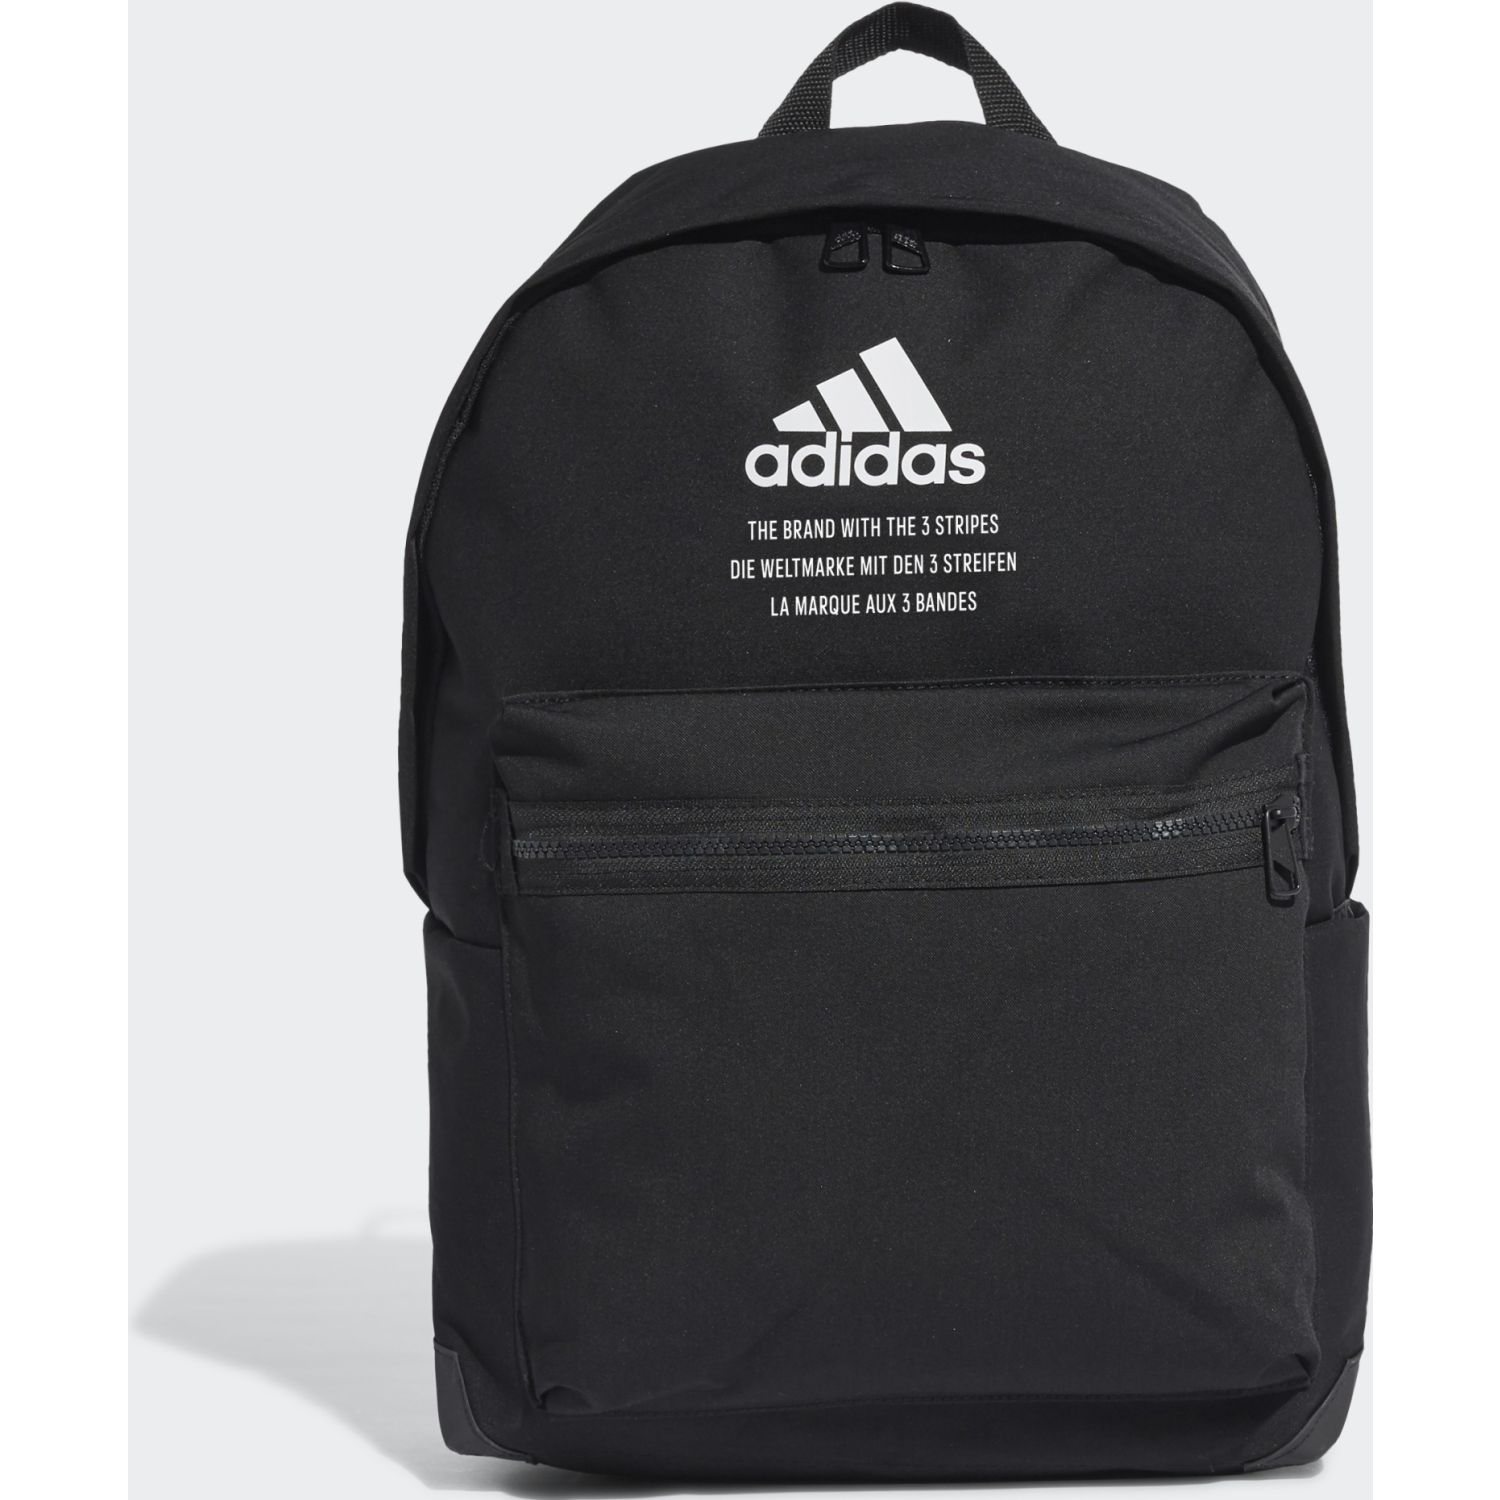 Adidas Clas Bp Fabric Negro Mochilas multipropósitos